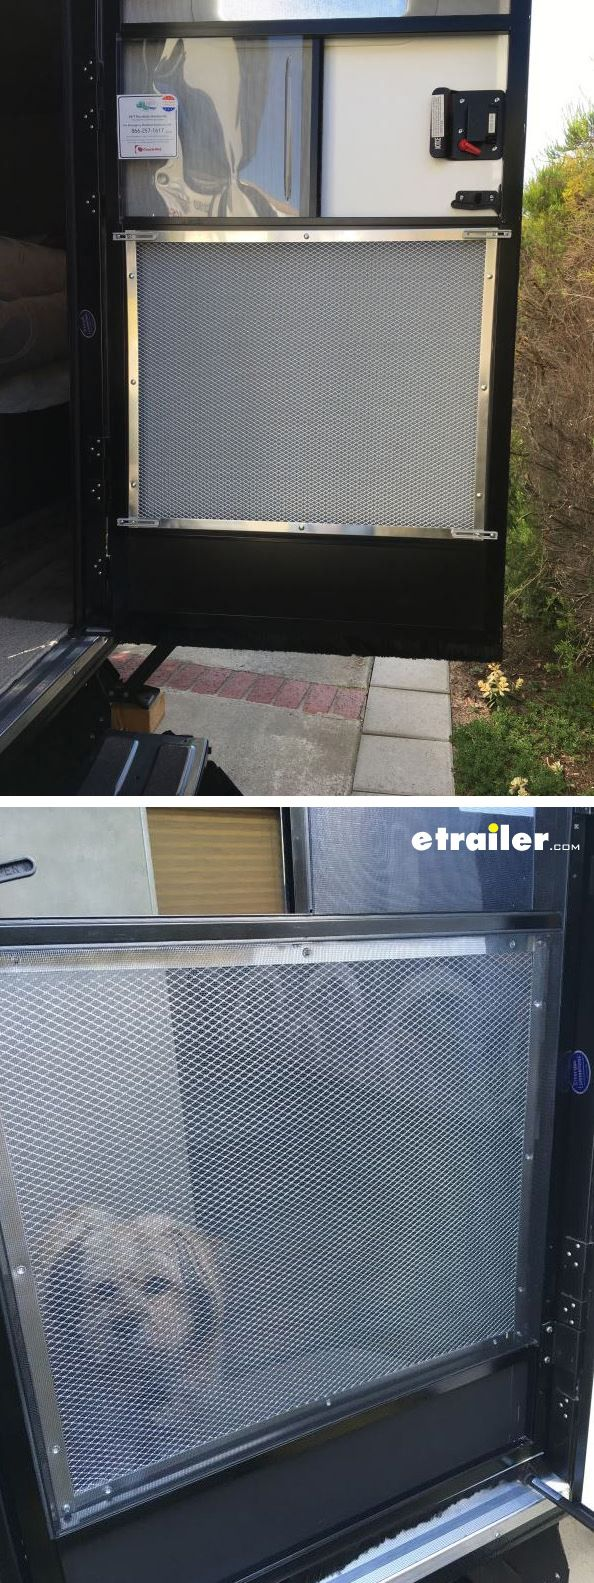 21 best vehicle organization images on pinterest vehicles install this aluminum standard grille on your rvs screen door to provide protection and easier exit it helps prevent people pets from vtopaller Image collections